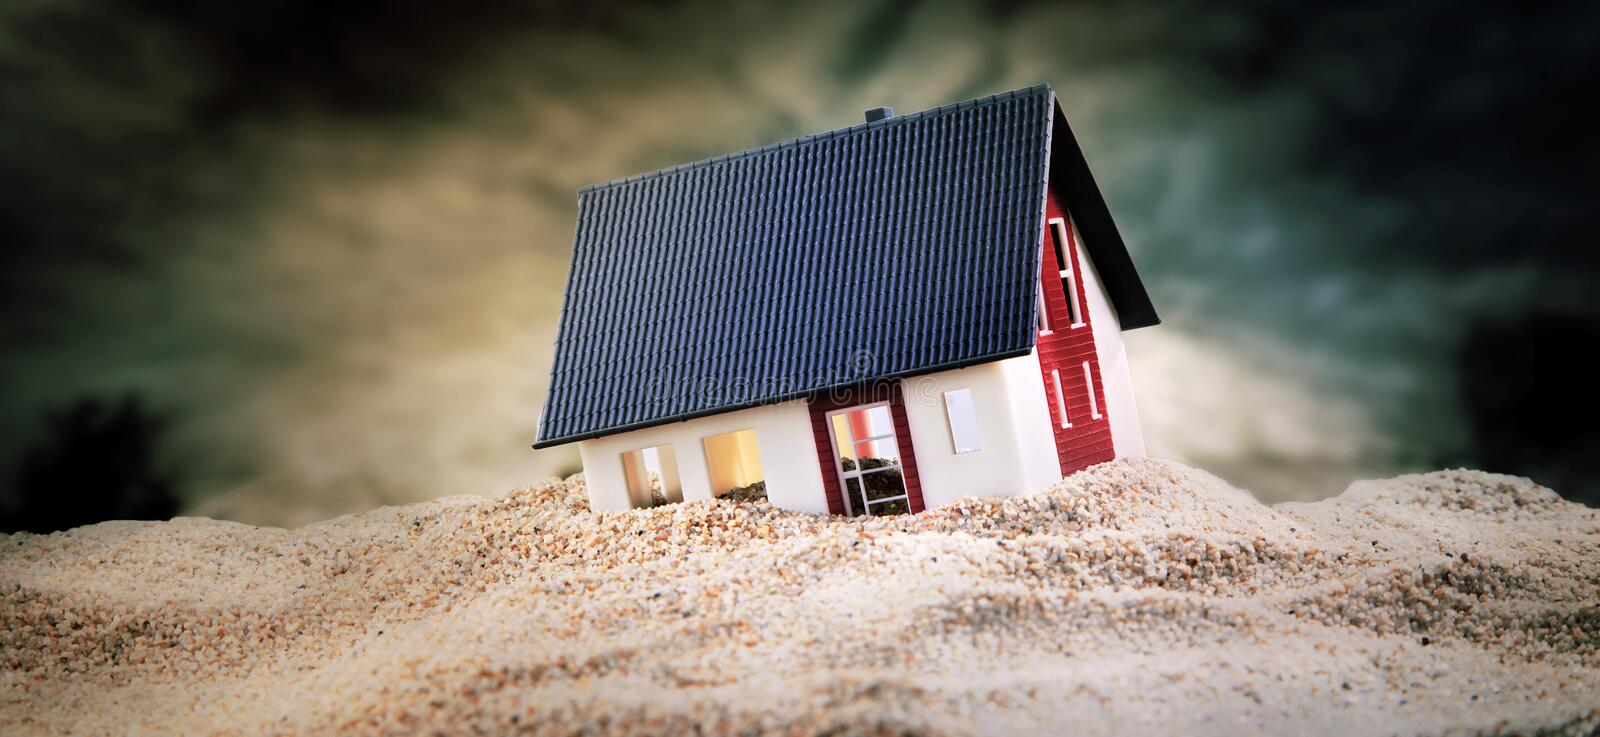 Miniature of house standing in sand royalty free stock image